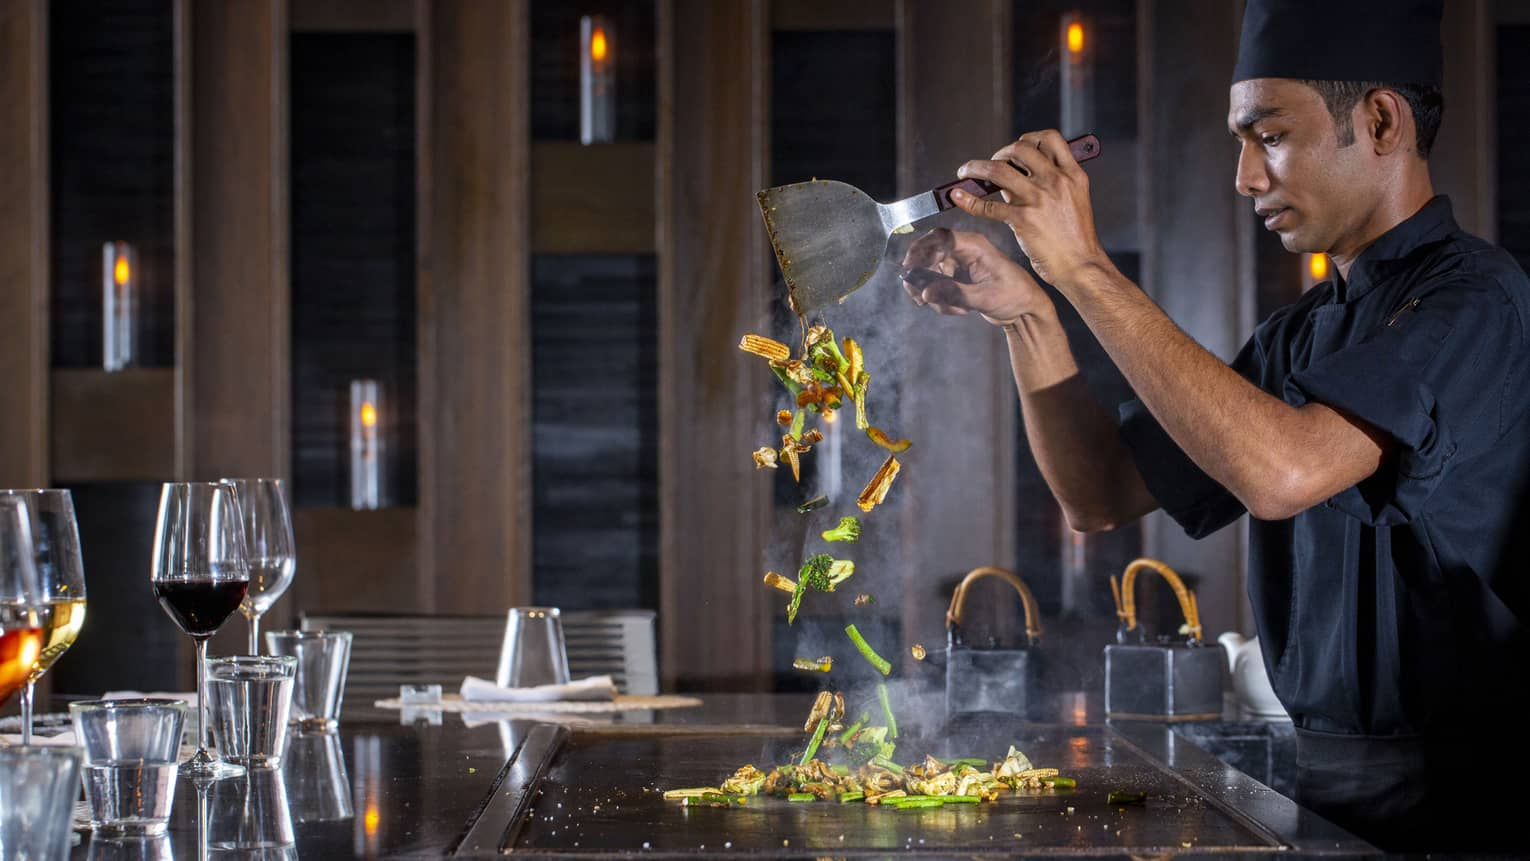 A four seasons dining staff working on a towering dish made of vegetables at the bar